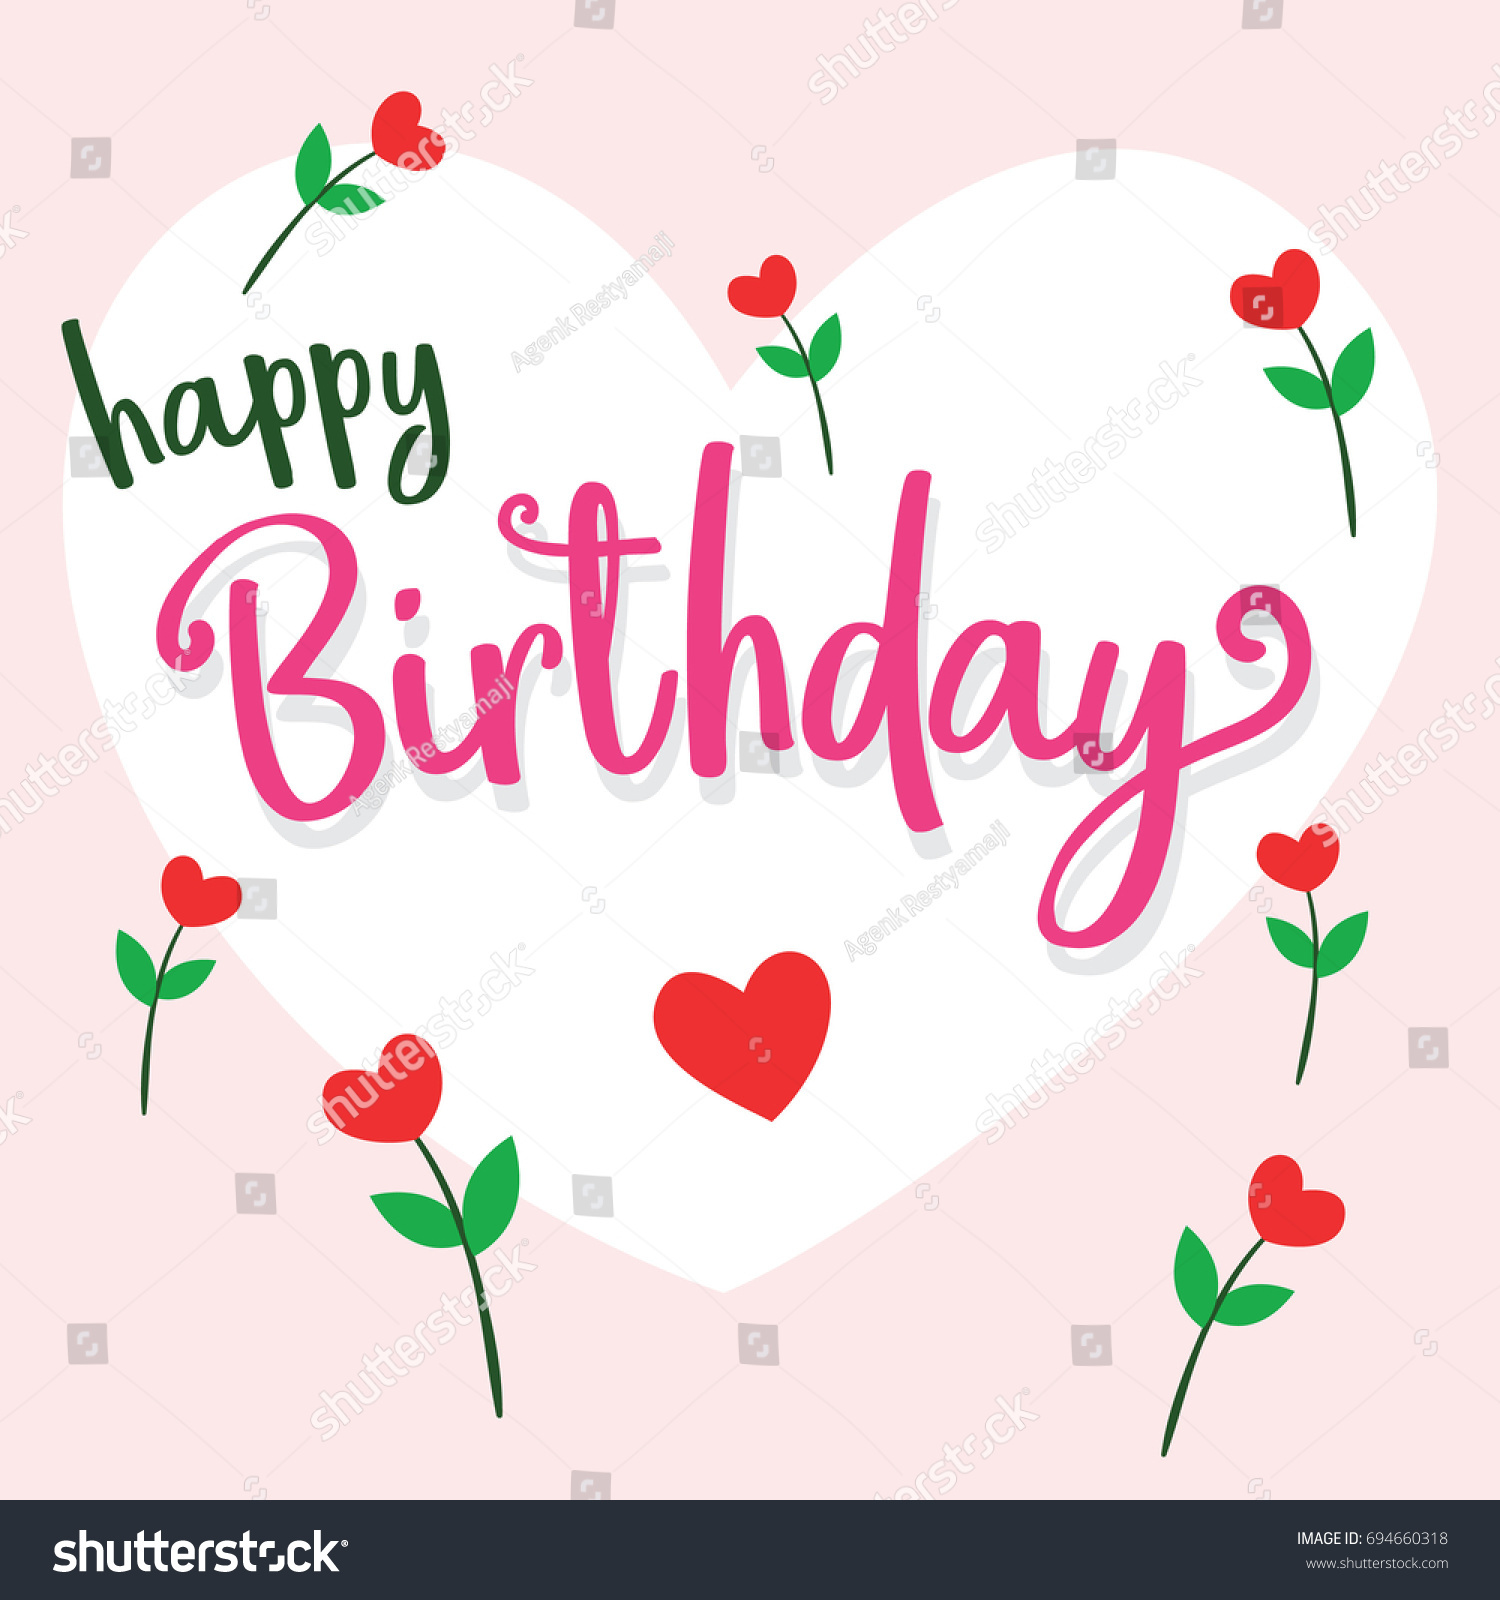 Happy birthday someone special stock vector 694660318 shutterstock happy birthday for someone special m4hsunfo